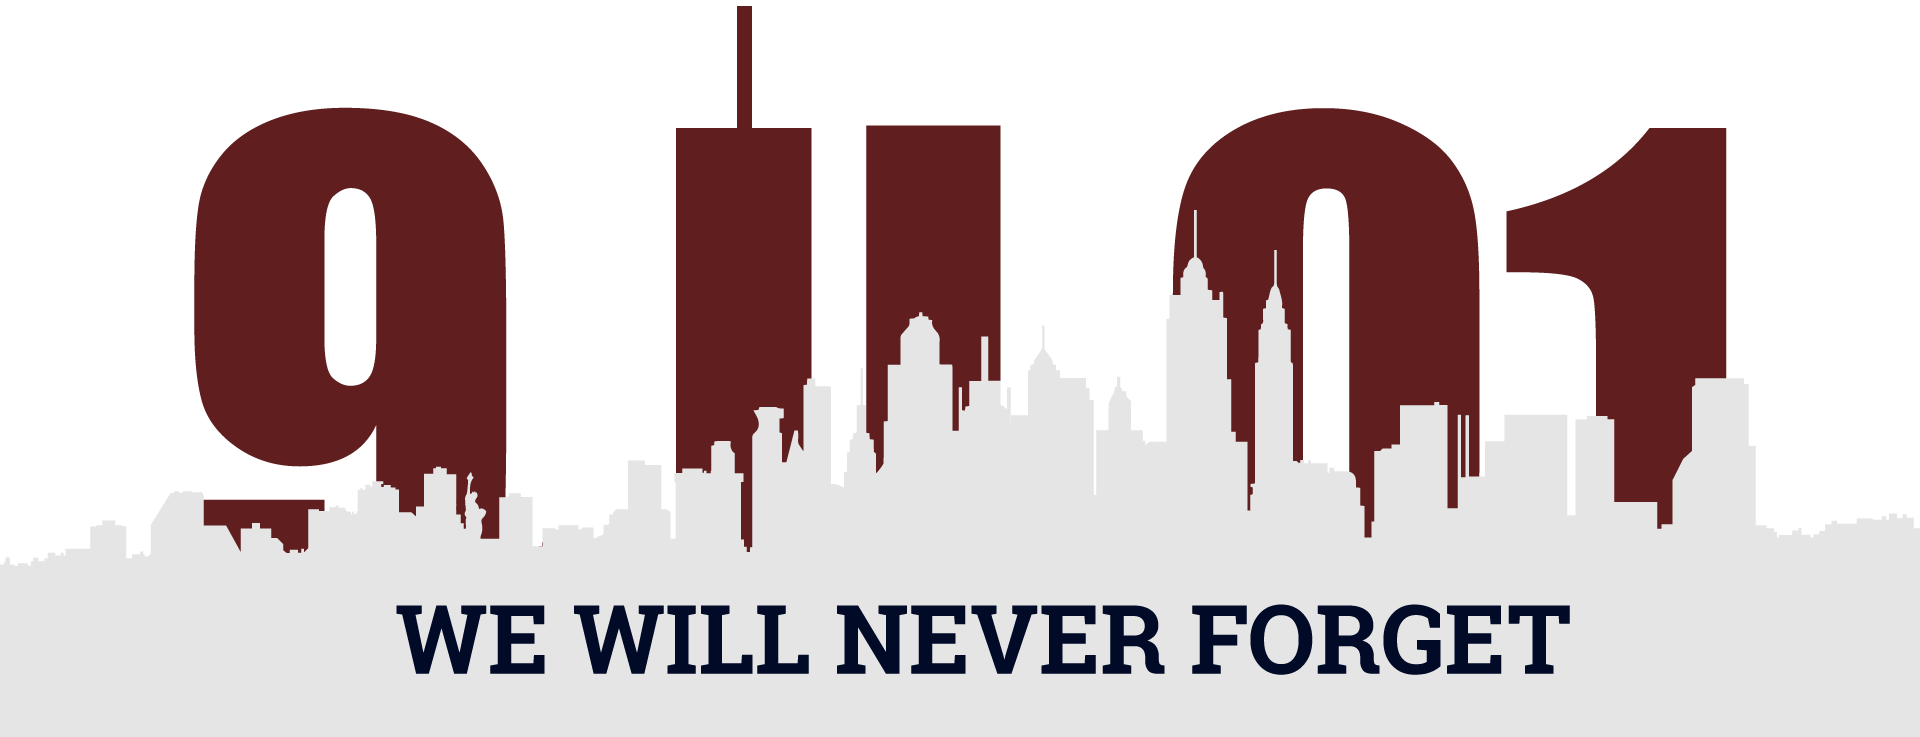 9/11 Victim Compensation Fund - Zadroga Act Benefits Claims - Never Forget 9 11 PNG